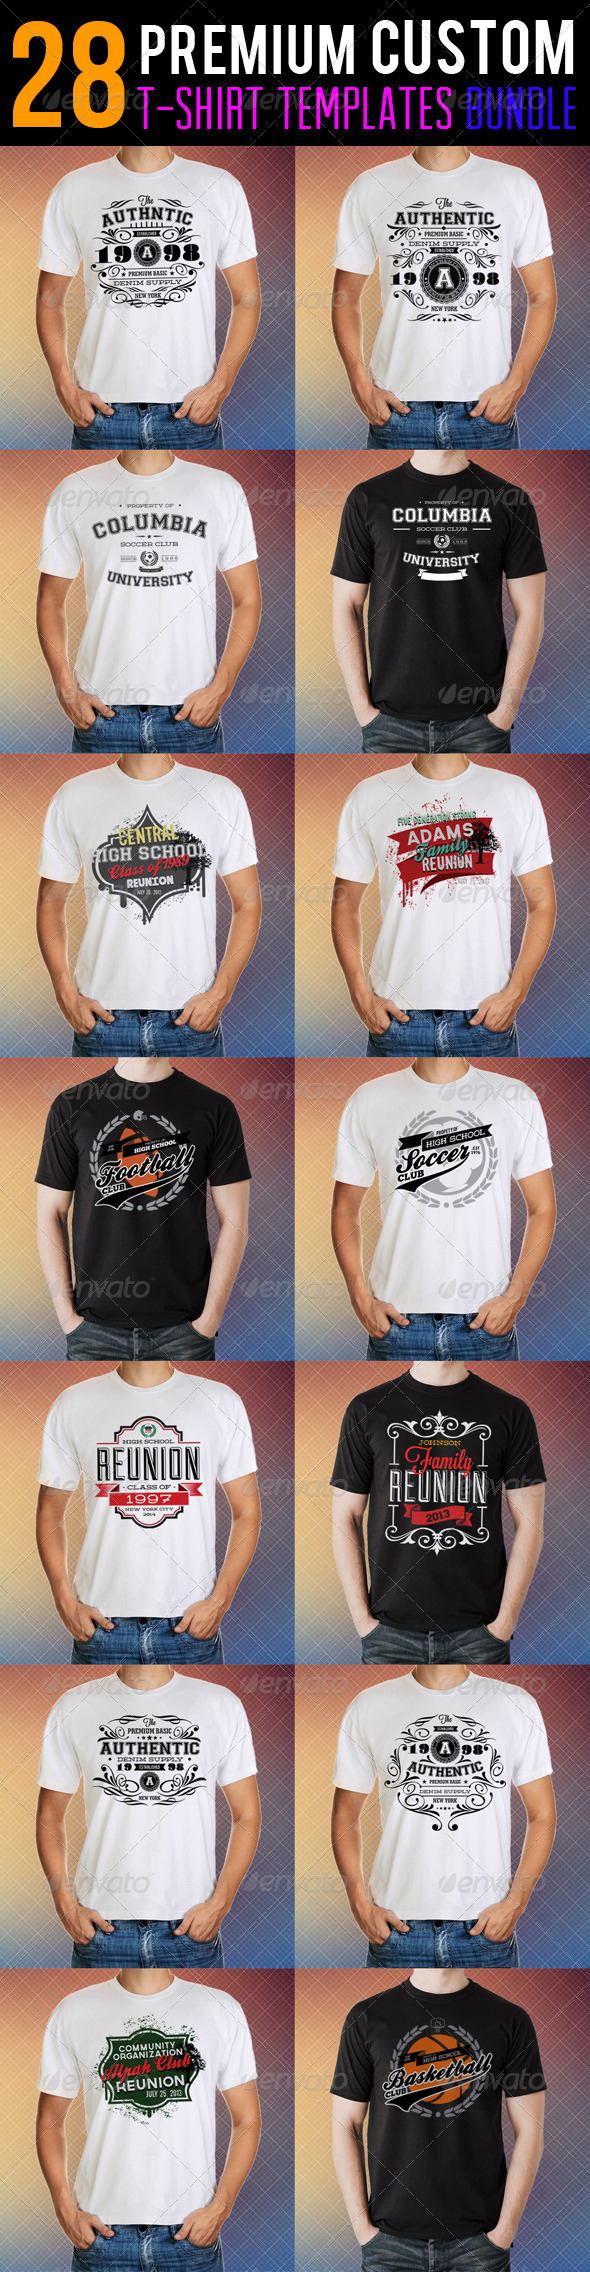 GraphicRiver Premium T-Shirt Templates Bundle 8652439